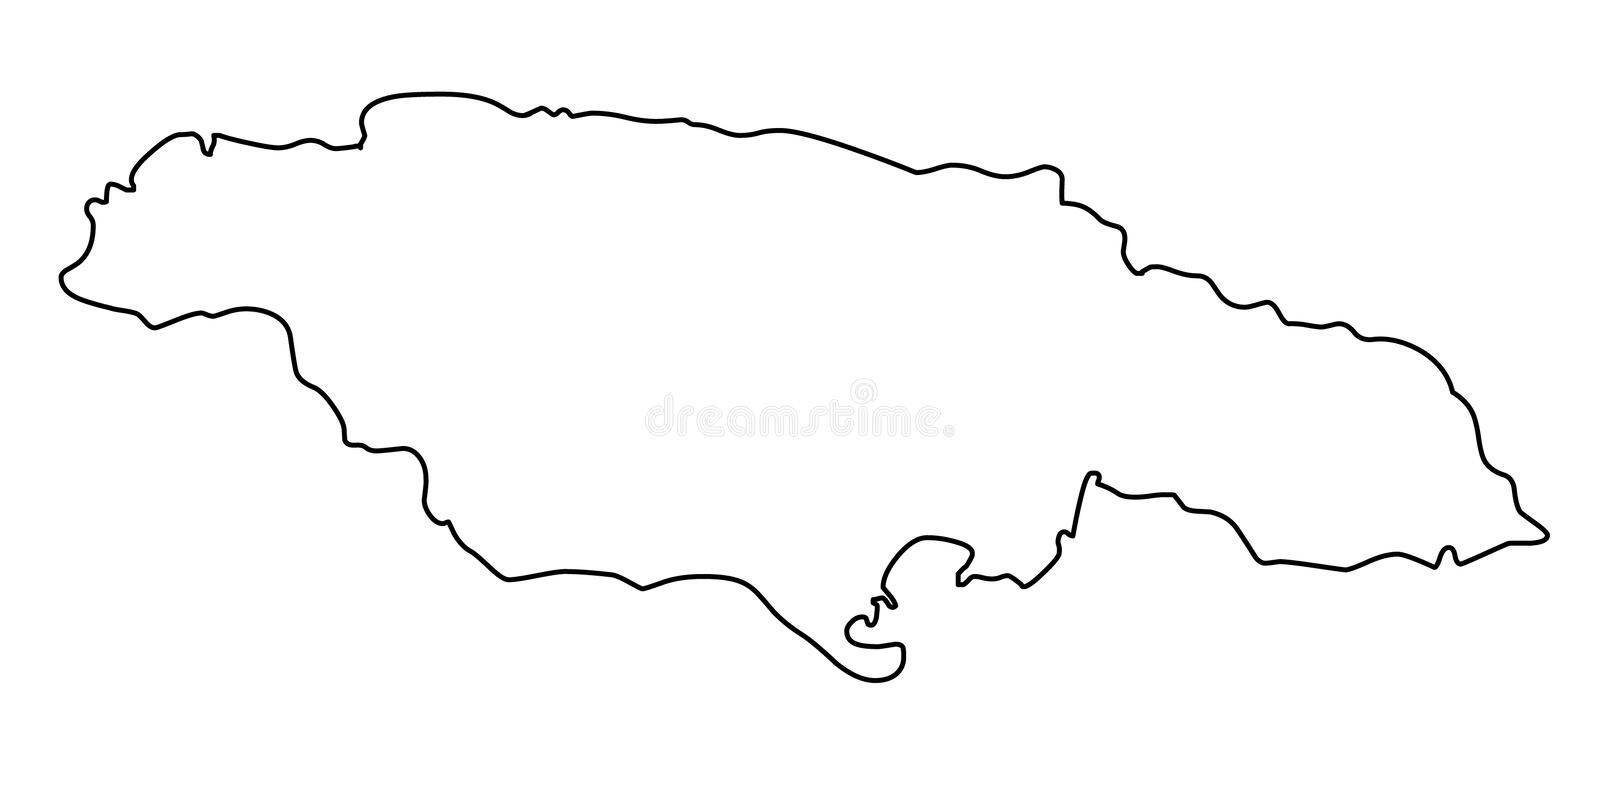 Jamaica map outline vector illustration. Isolated on white background vector illustration